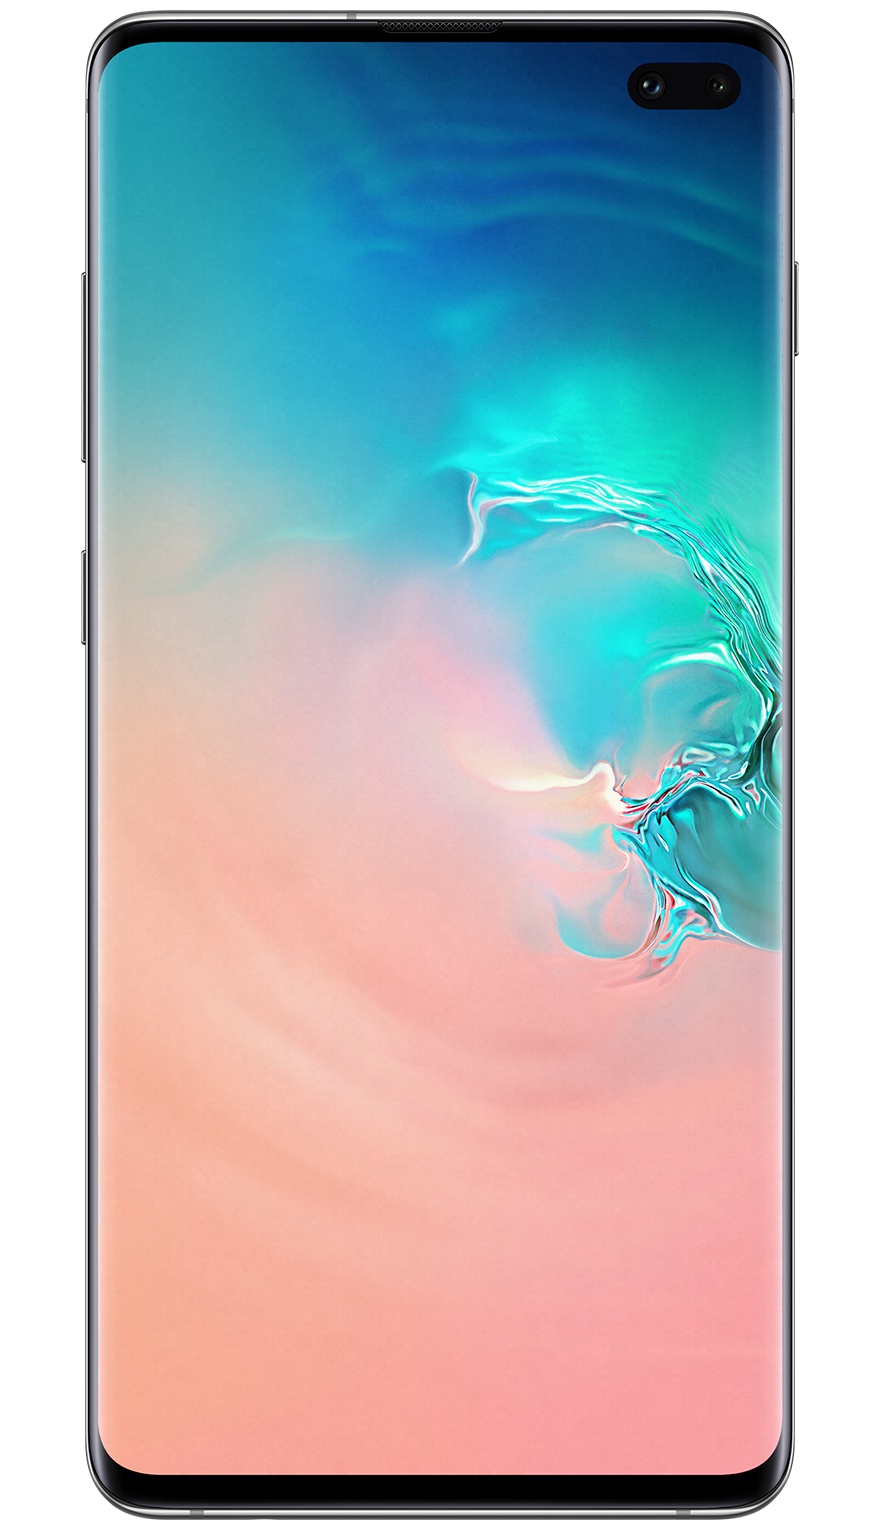 Samsung Galaxy S10 Plus 1 TB